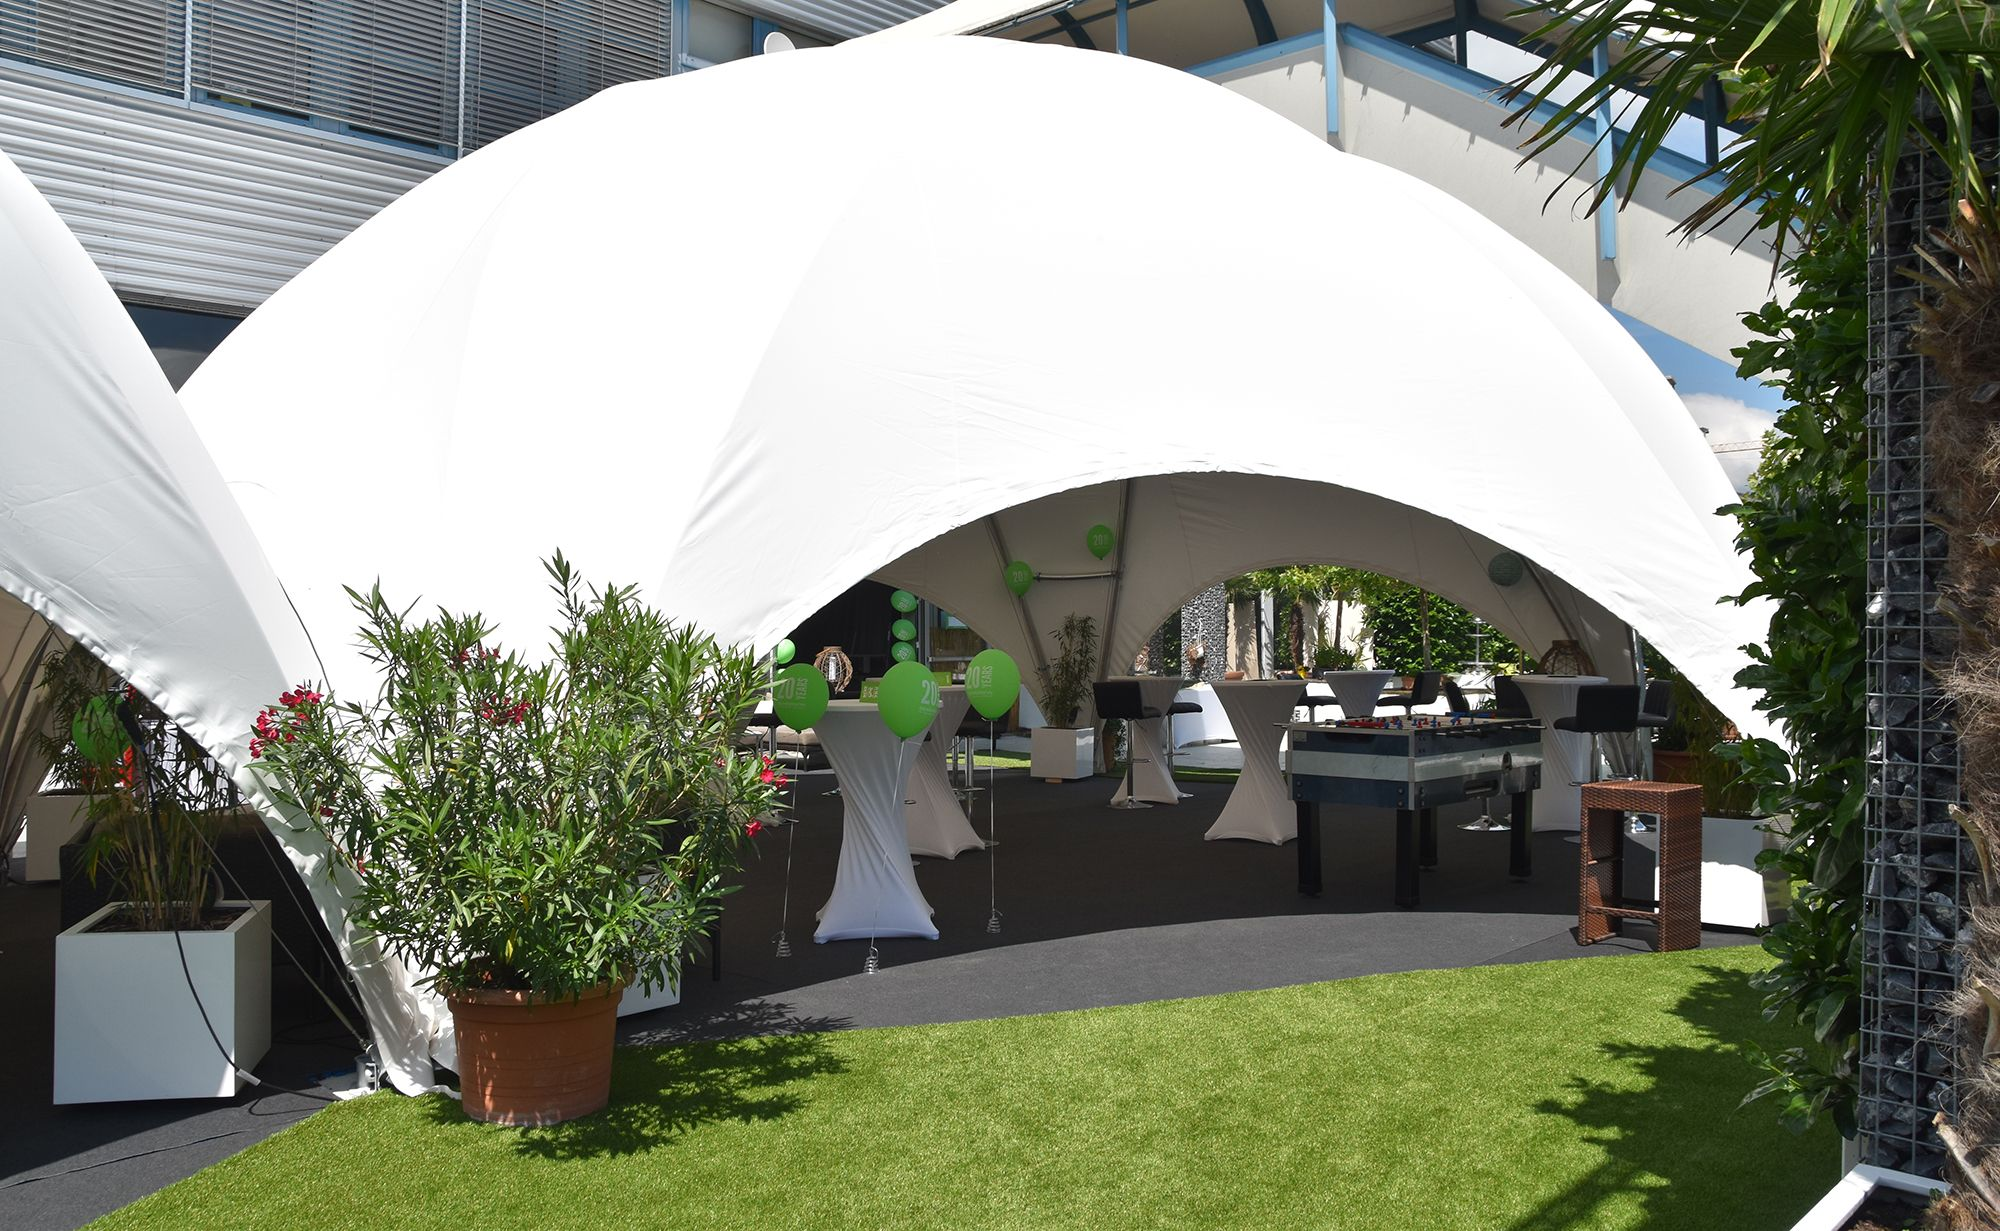 bild_background_outdoor_garten_eventgarten_outdoorbereich_13_starlite_eventhall_eventlocation_eventlokal_event_hall_location_lokal_venue_rapperswil_jona_zuerichsee